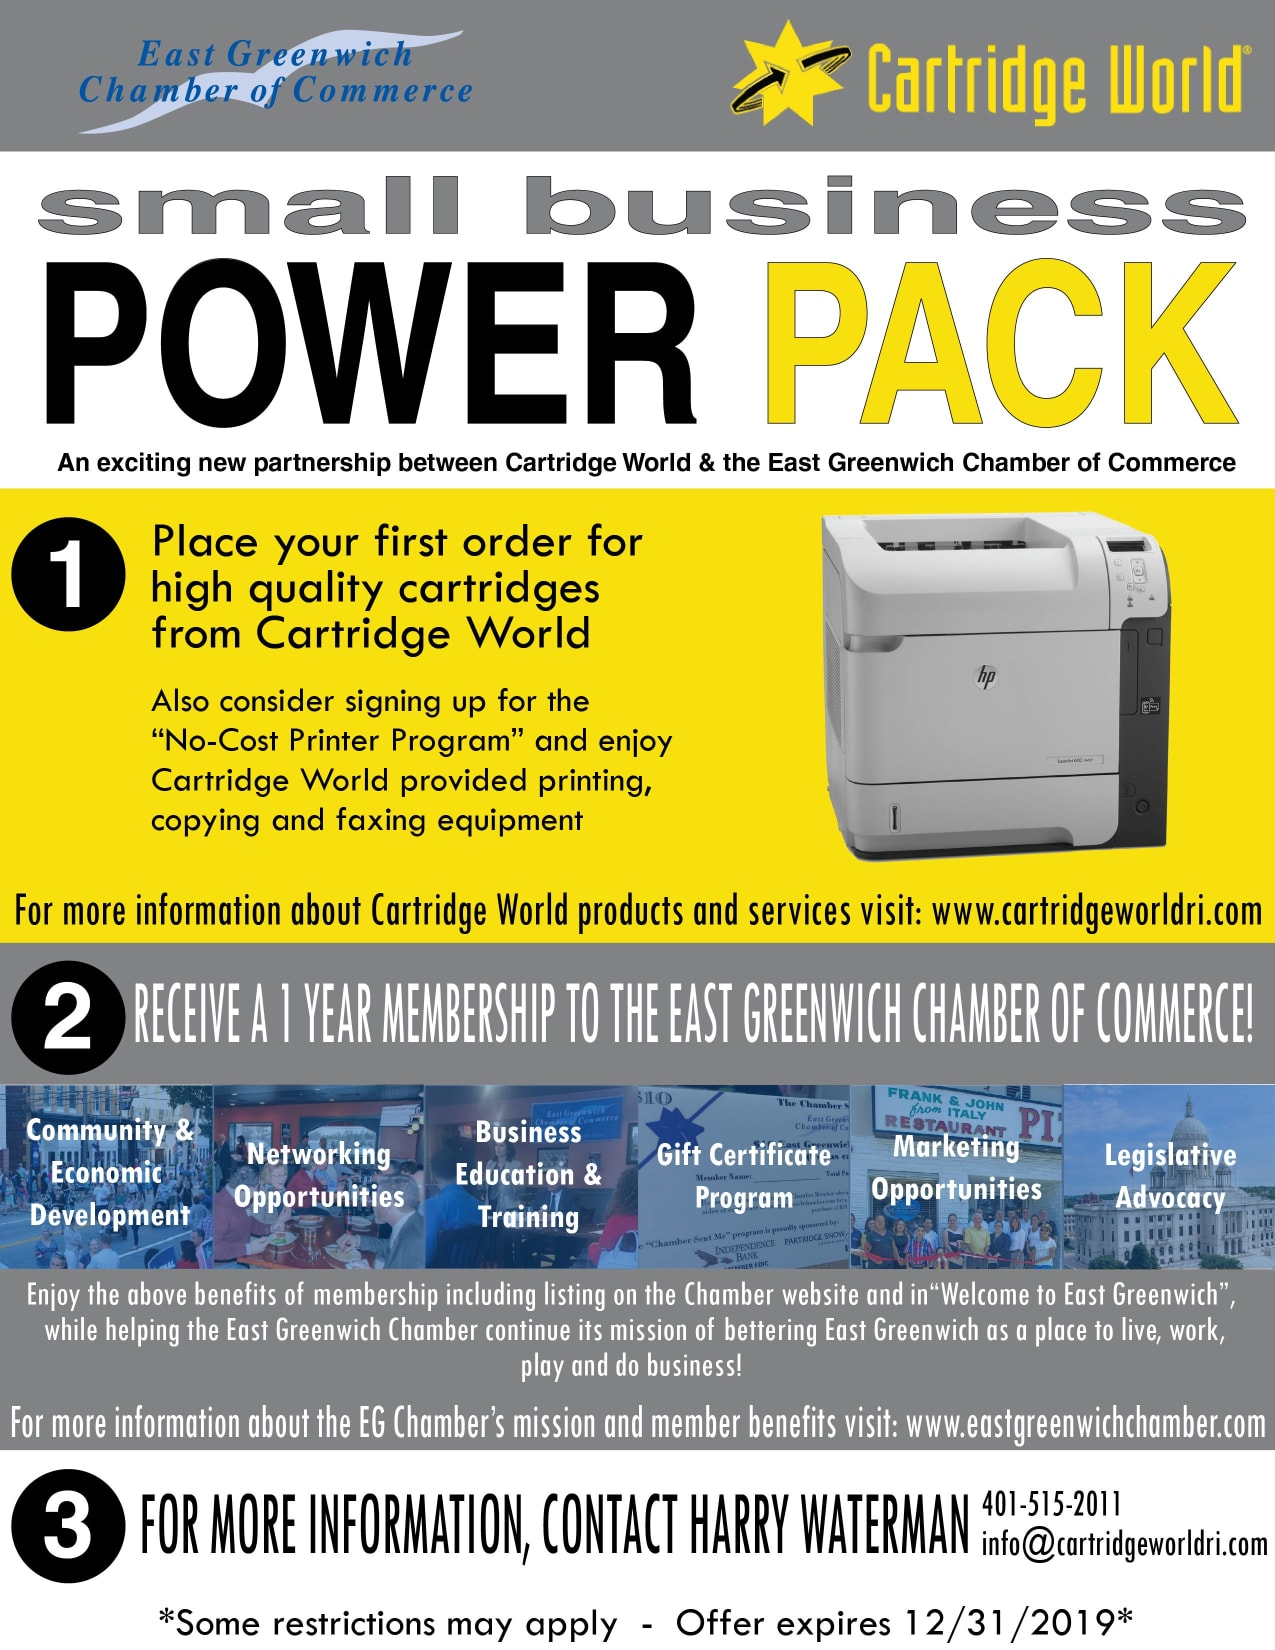 power-pack-flyer-01-w1275.jpg